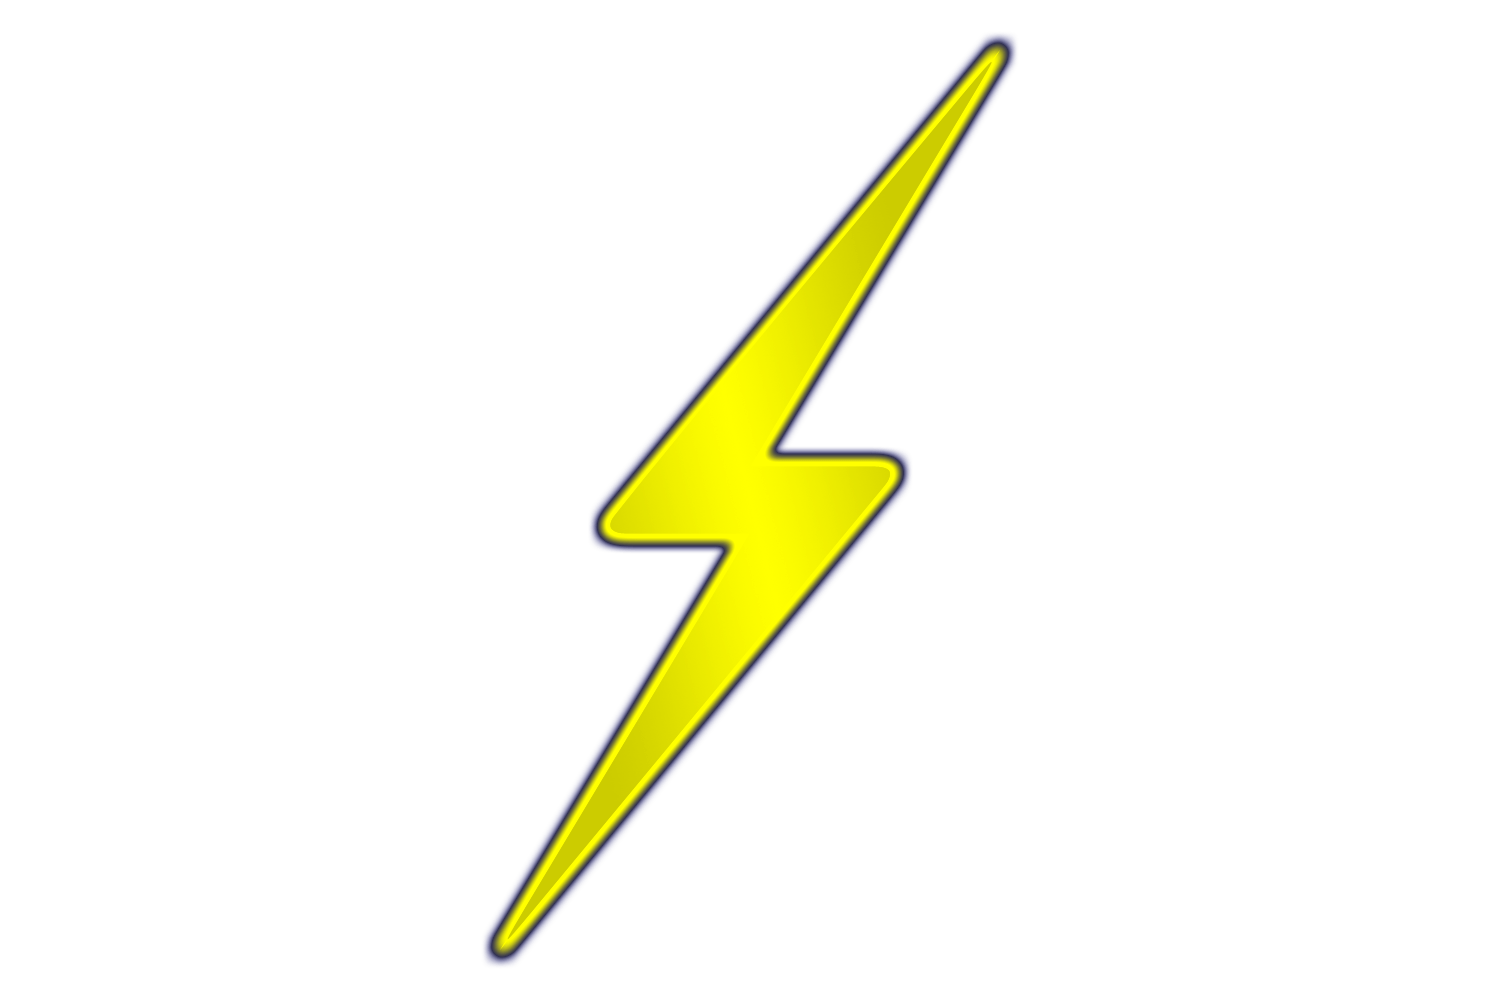 electric clipart lightning flash